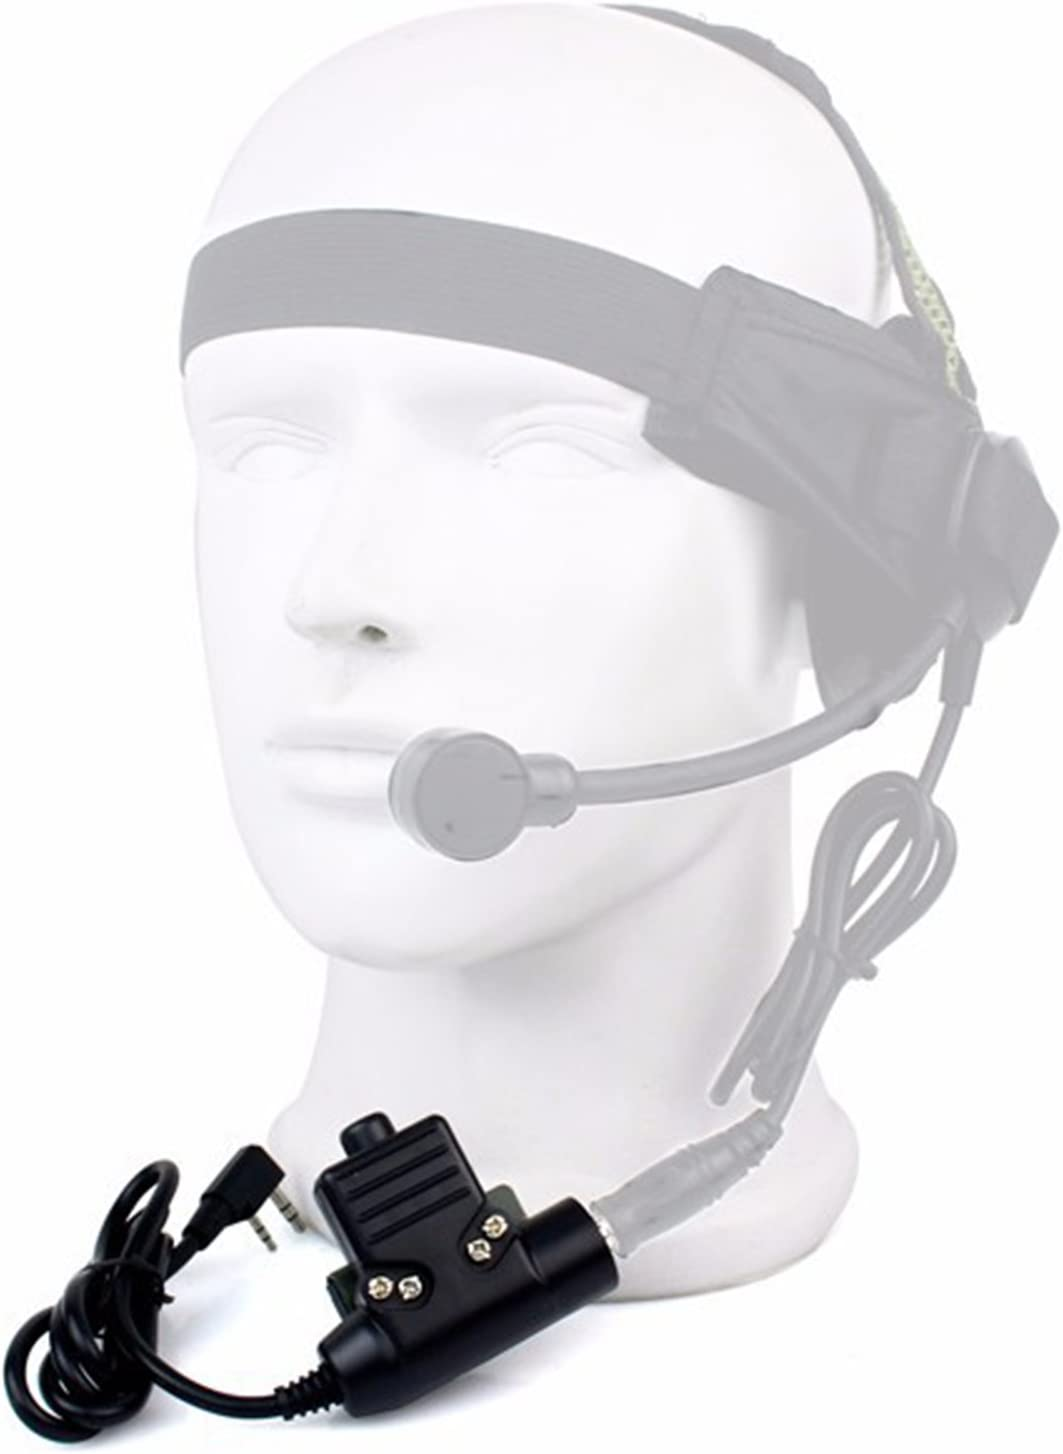 1Pcs Z Tactical TCI U94 PTT Heavy Duty Headset For Kenwood Baofeng WOUXUN Radio.